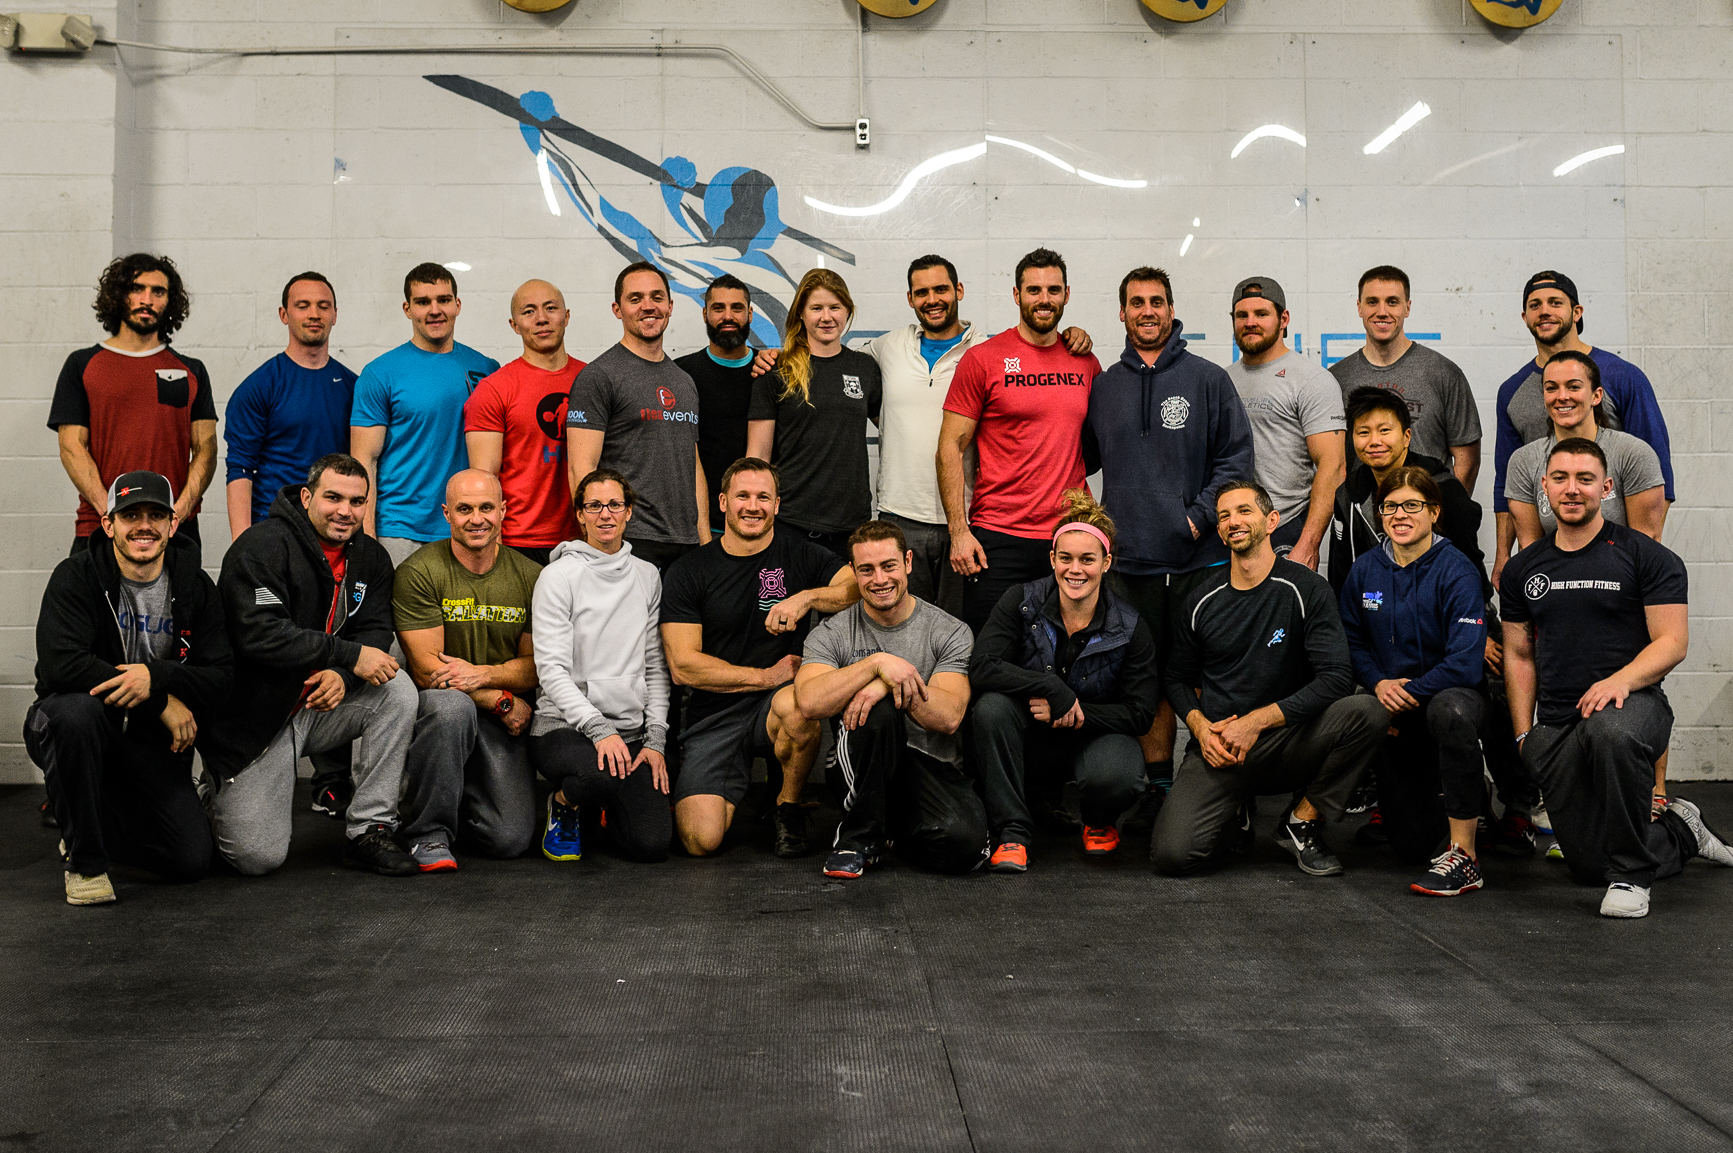 All your coaches, plus a whole lot of other coaches from all over learning about performance care and injury prevention!